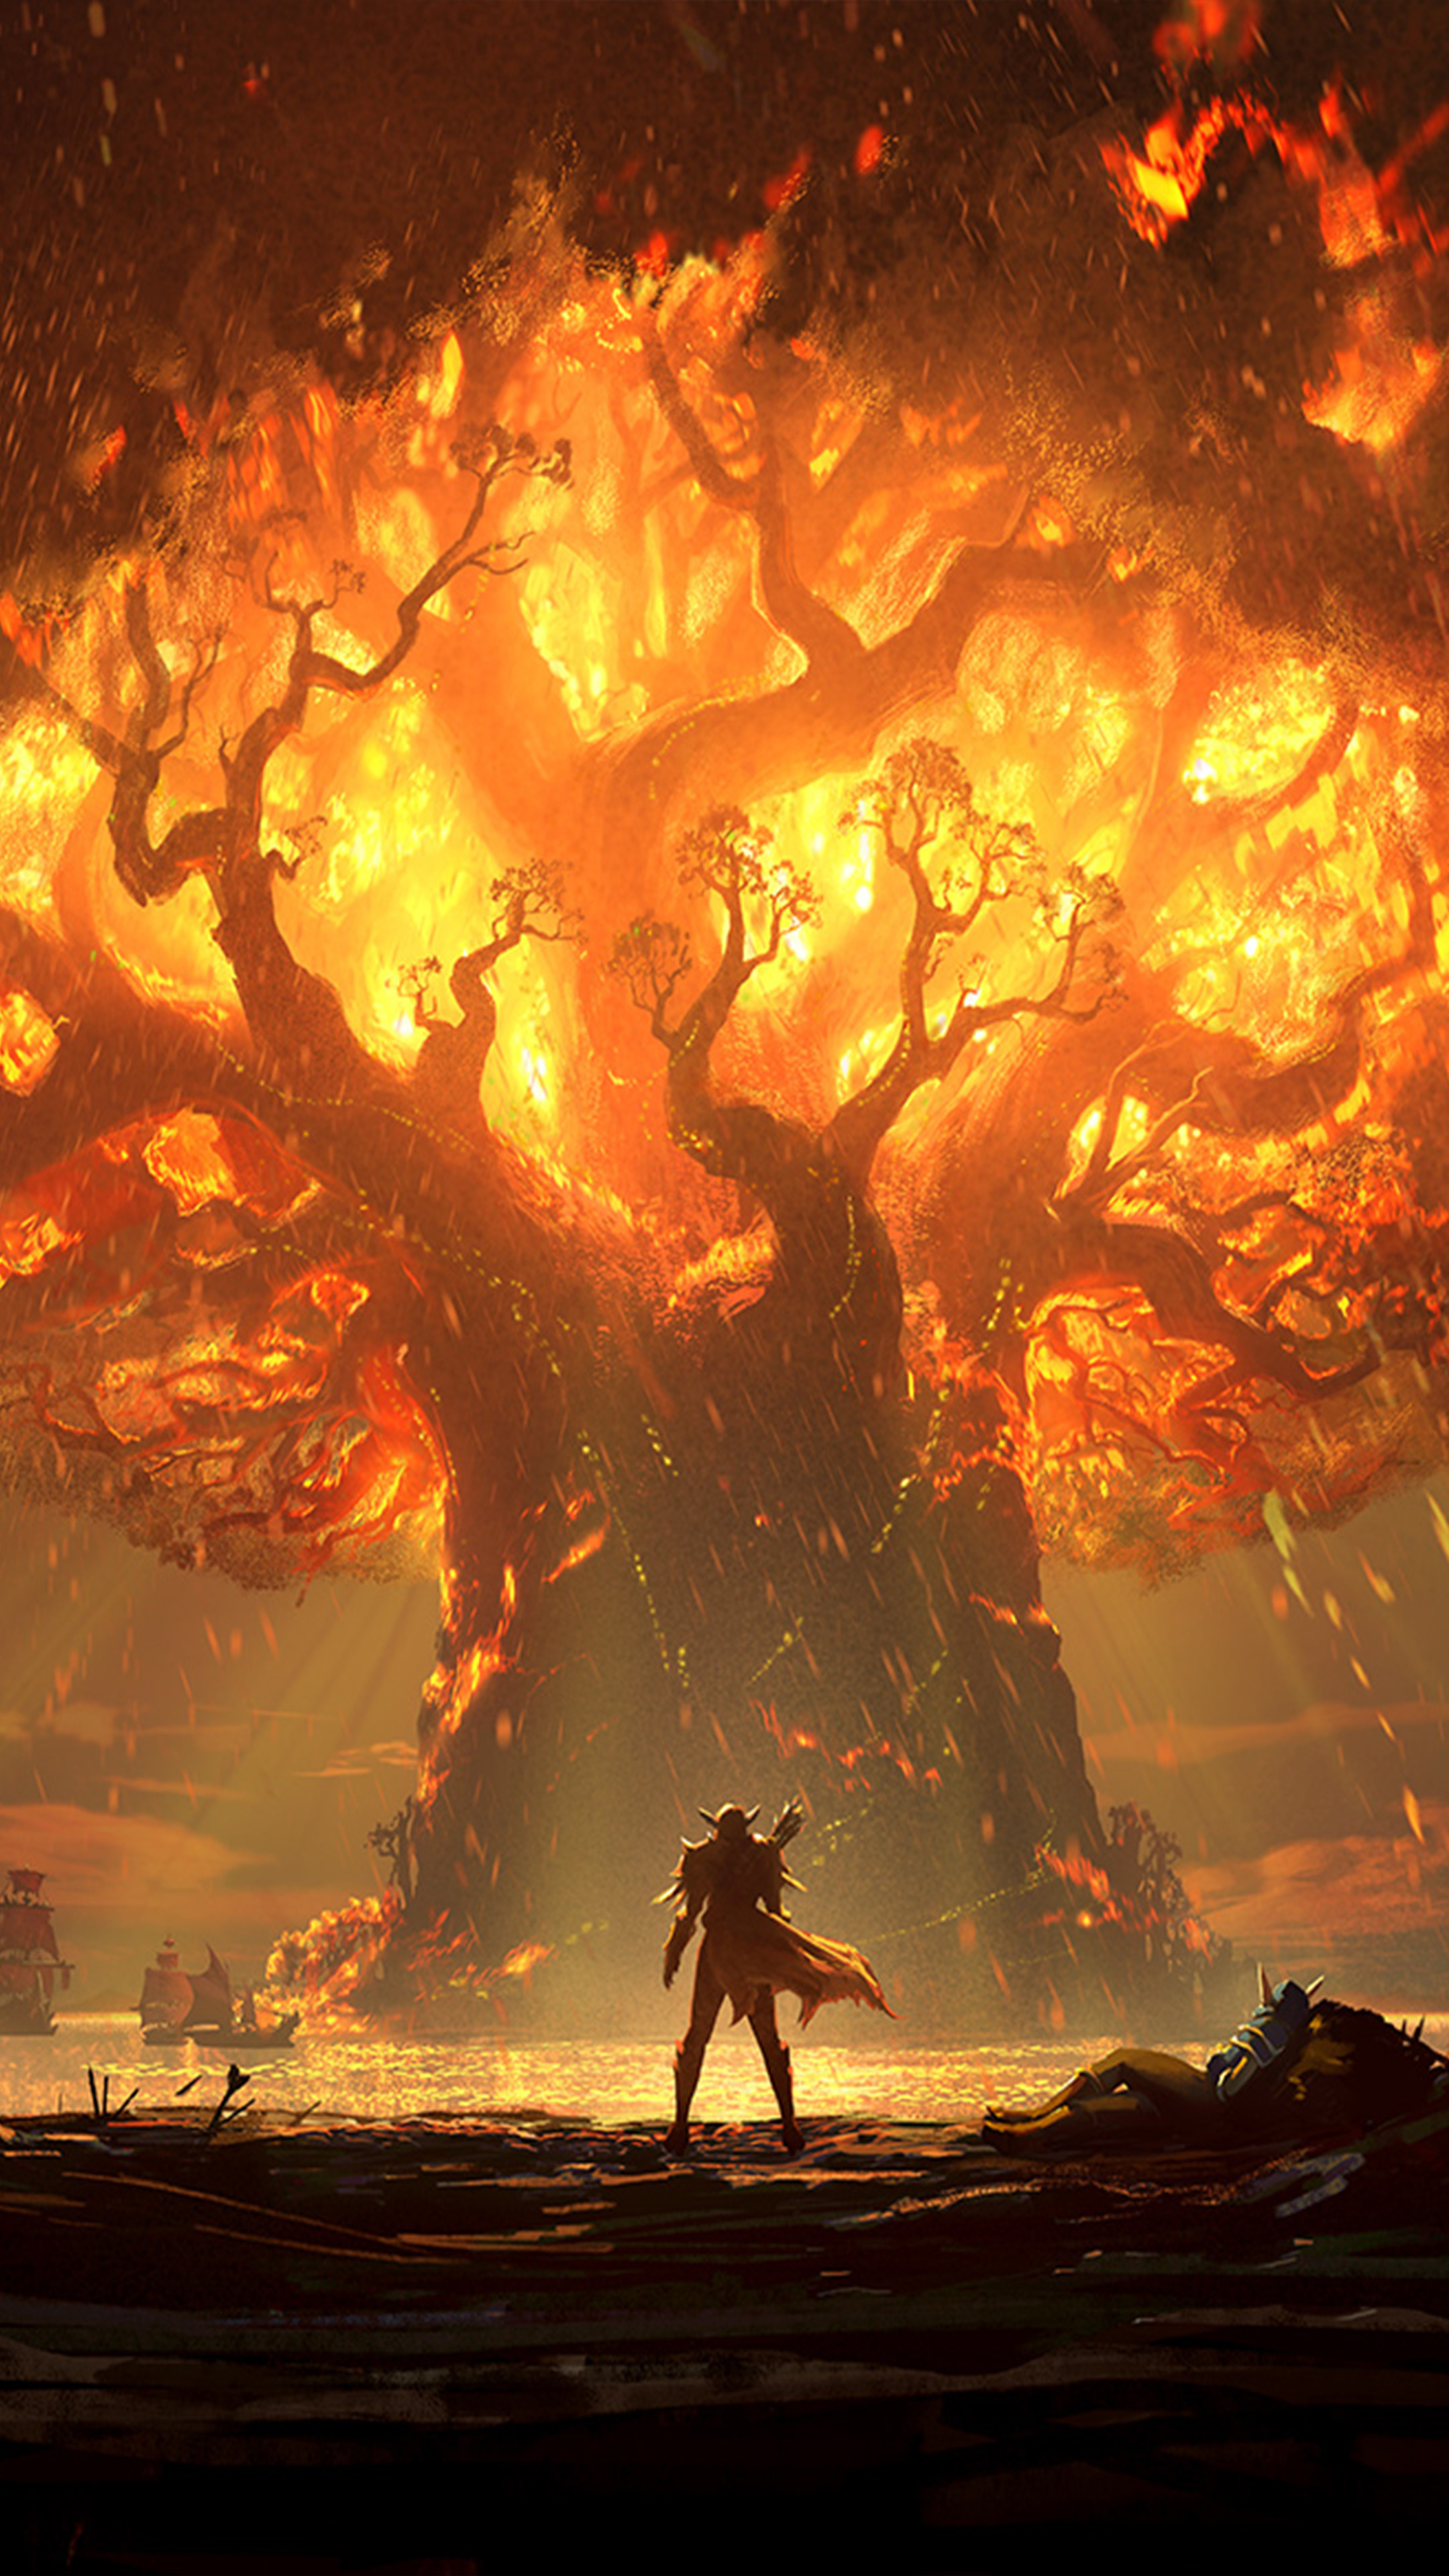 World Of Warcraft Battle For Azeroth 4k Ultra Hd Mobile Wallpaper